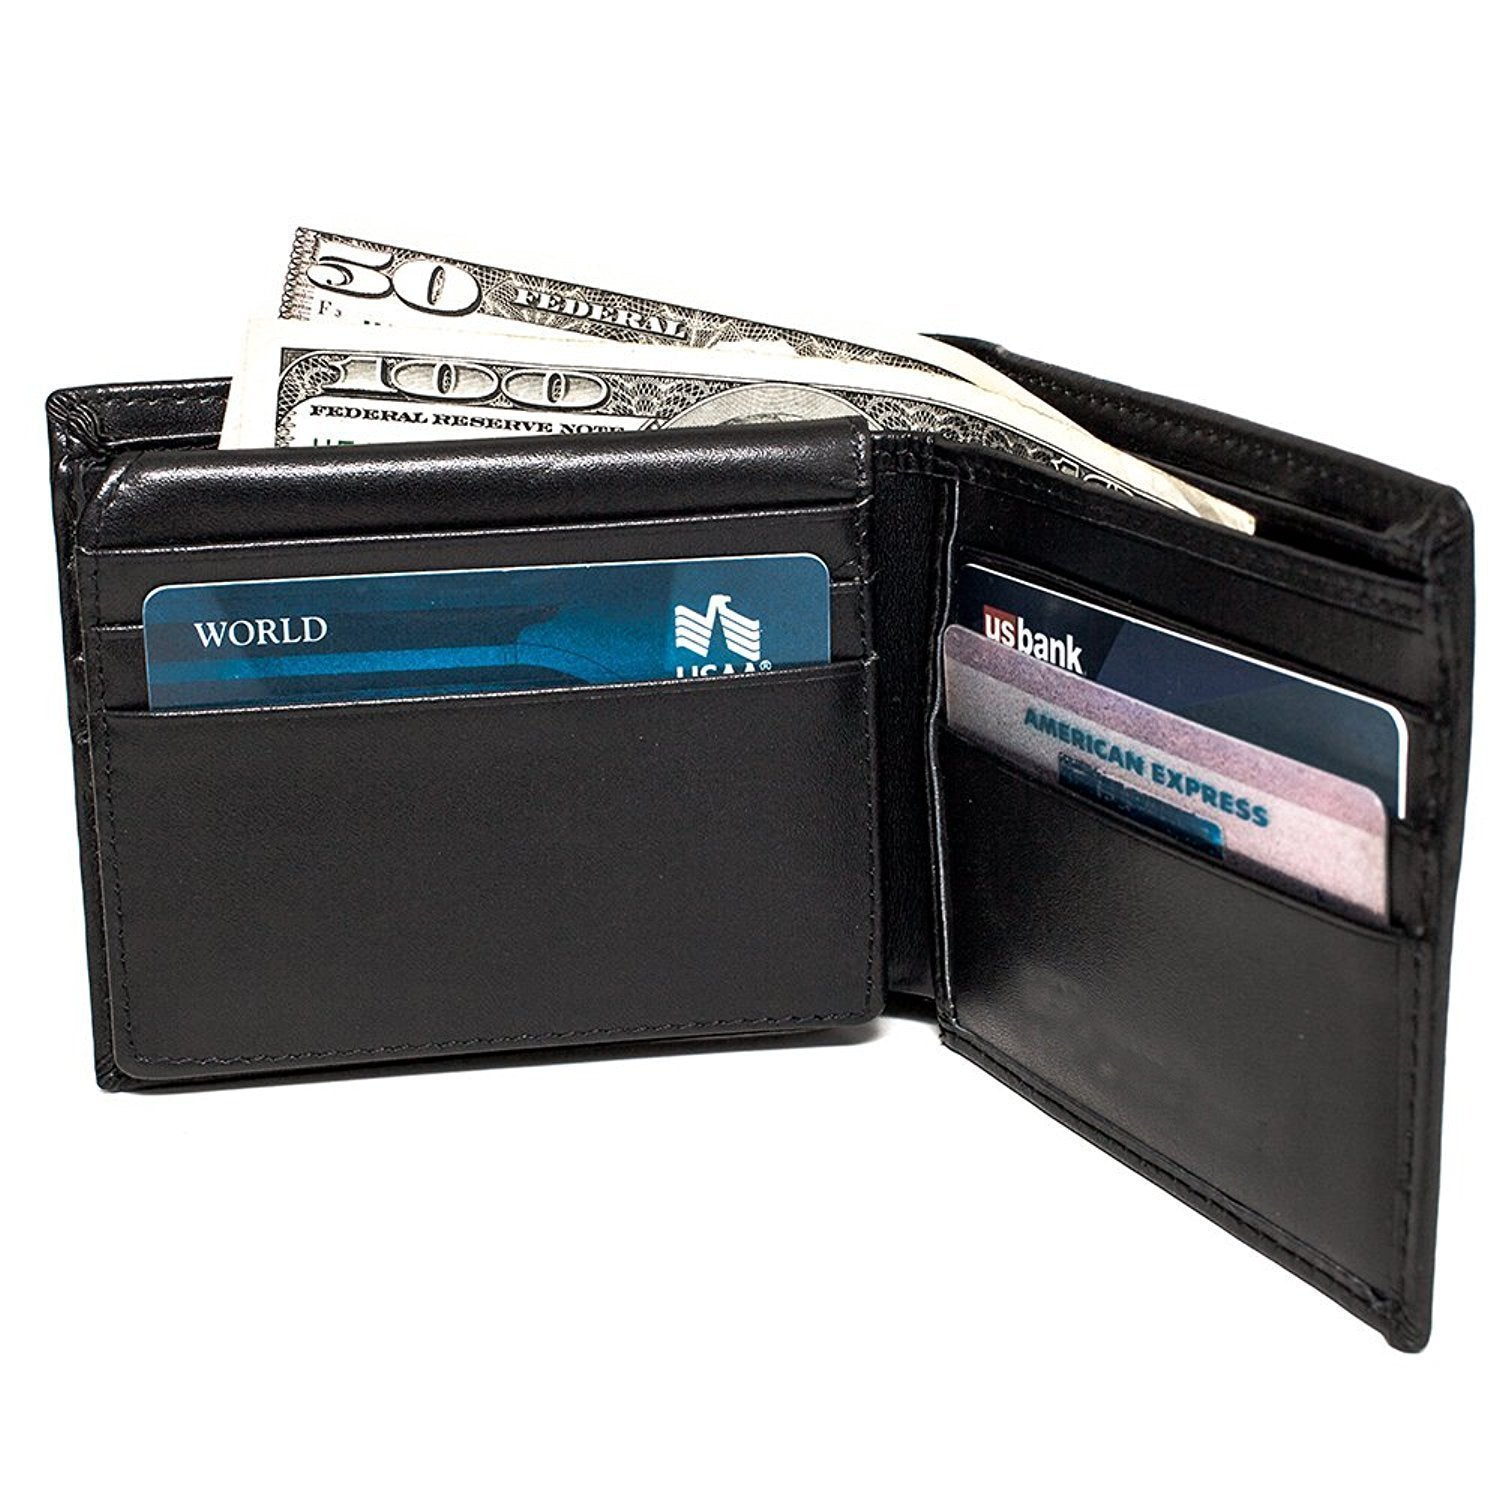 RFID Blocking Bifold Wallets for Men,Secure Genuine Leather Billfolds for Men with Credit Card Protectors(Black)